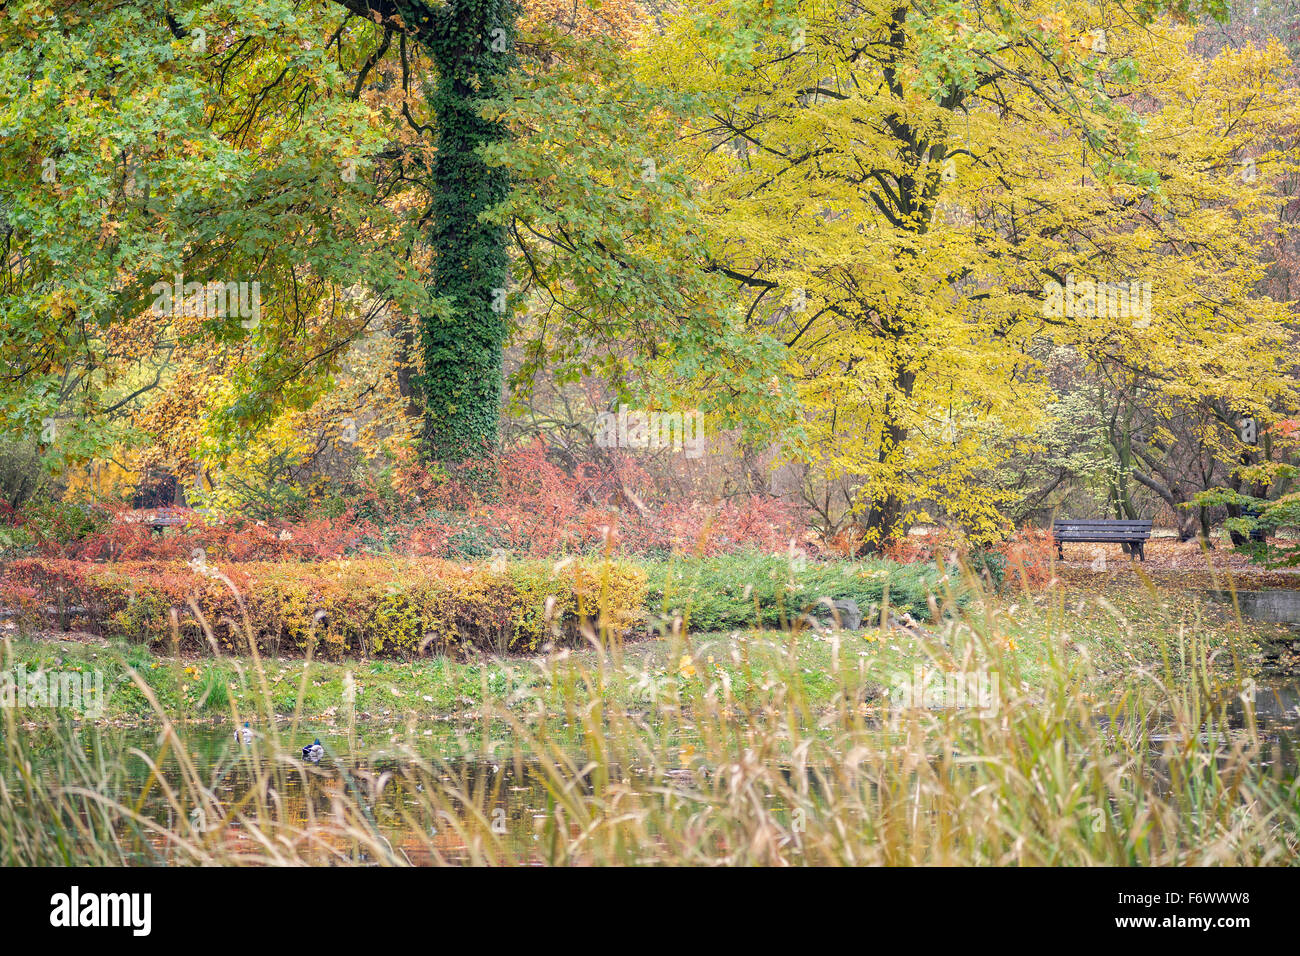 Multicolor autumn fall foliage on the trees and bushes - Stock Image